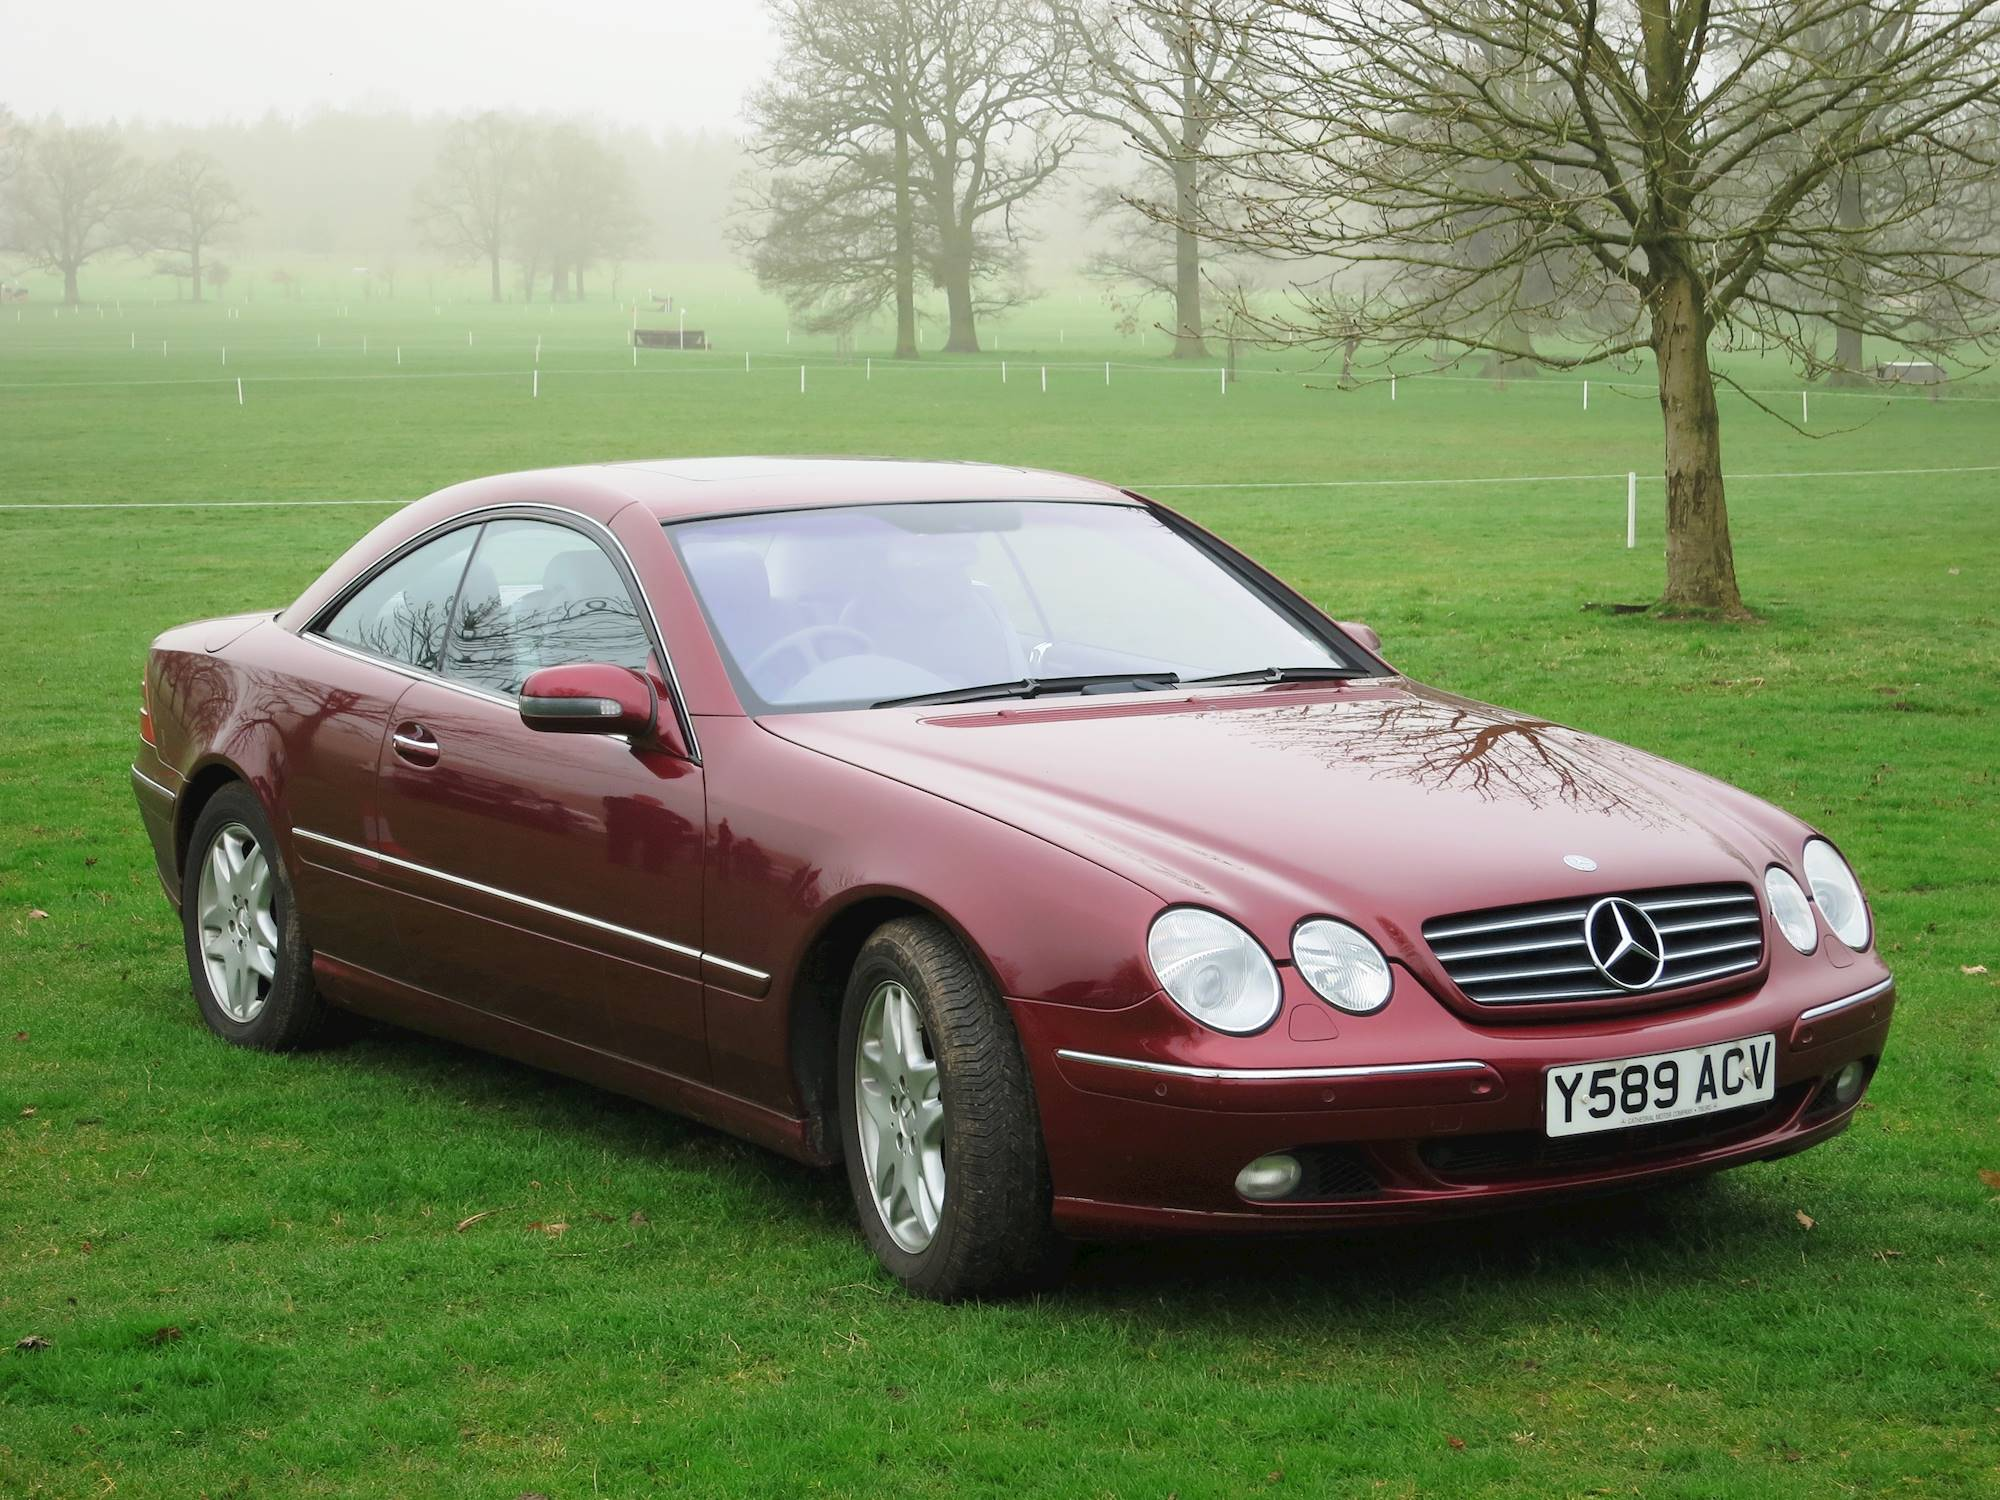 2001 Mercedes Benz CL500 Base 2dr Coupe 5 spd Touch Shift w OD